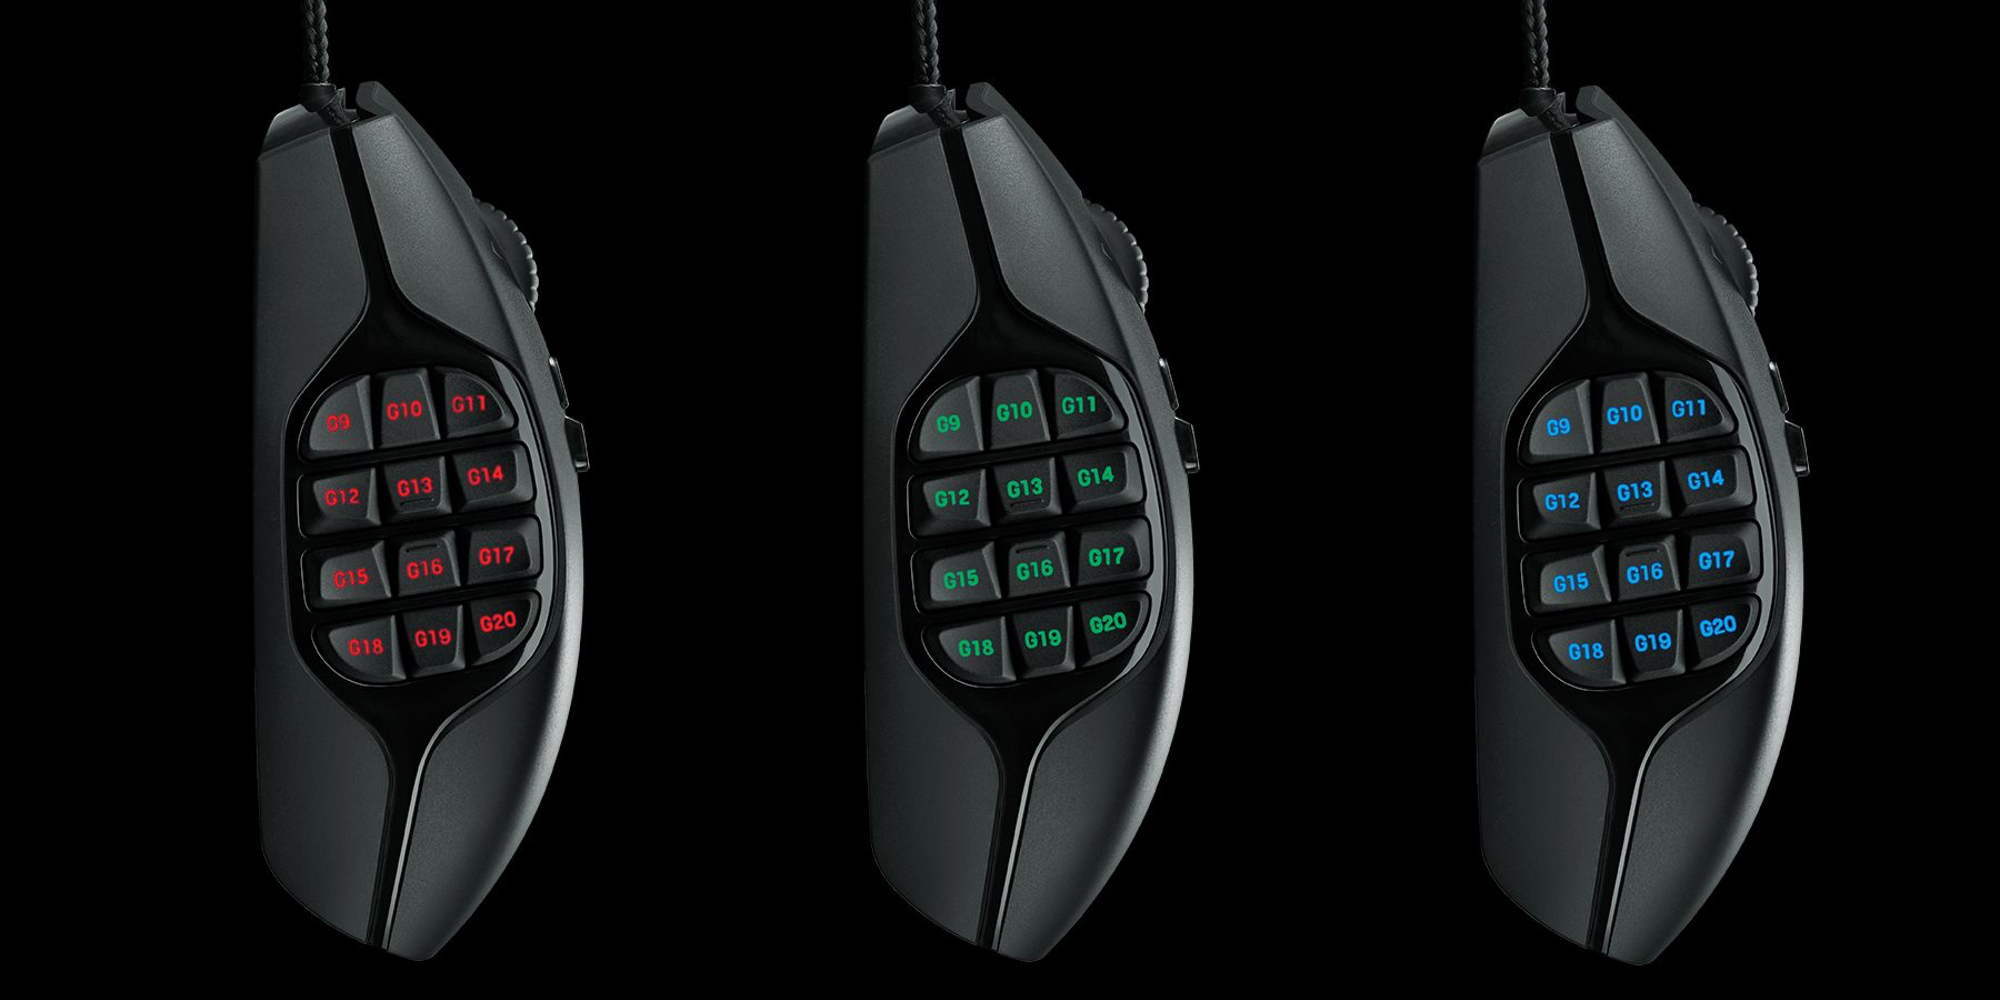 Level Up Your Game With Logitech S G600 Mmo Mouse At 25 Shipped